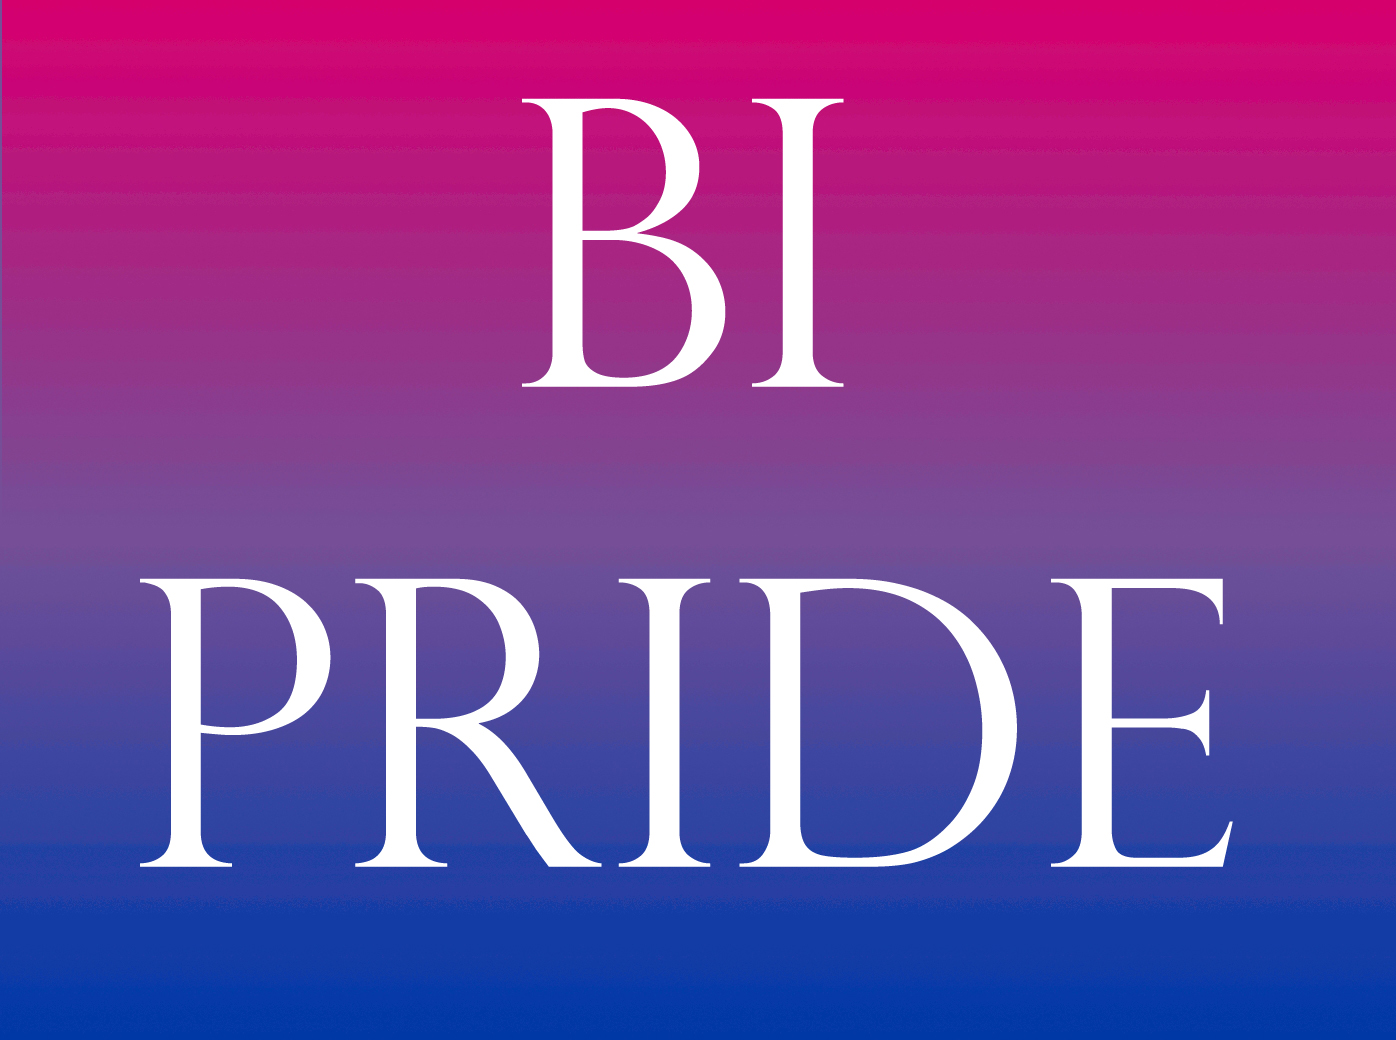 15th annual Bi Pride Day to be celebrated worldwide - National LGBTQ Task Force